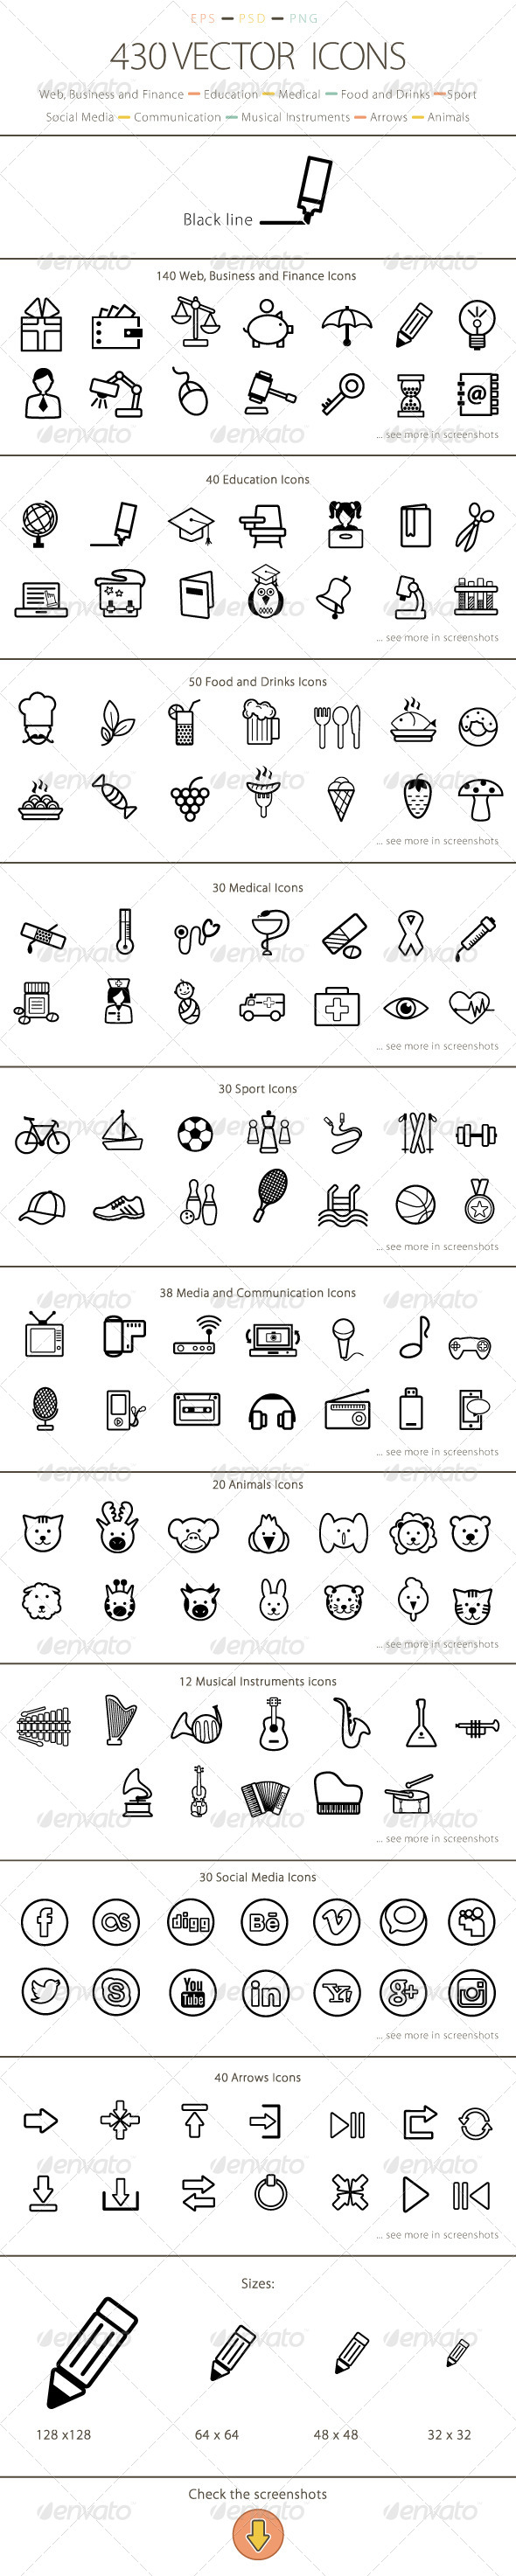 Set of 430 Vector Icons - Black Line - Web Icons